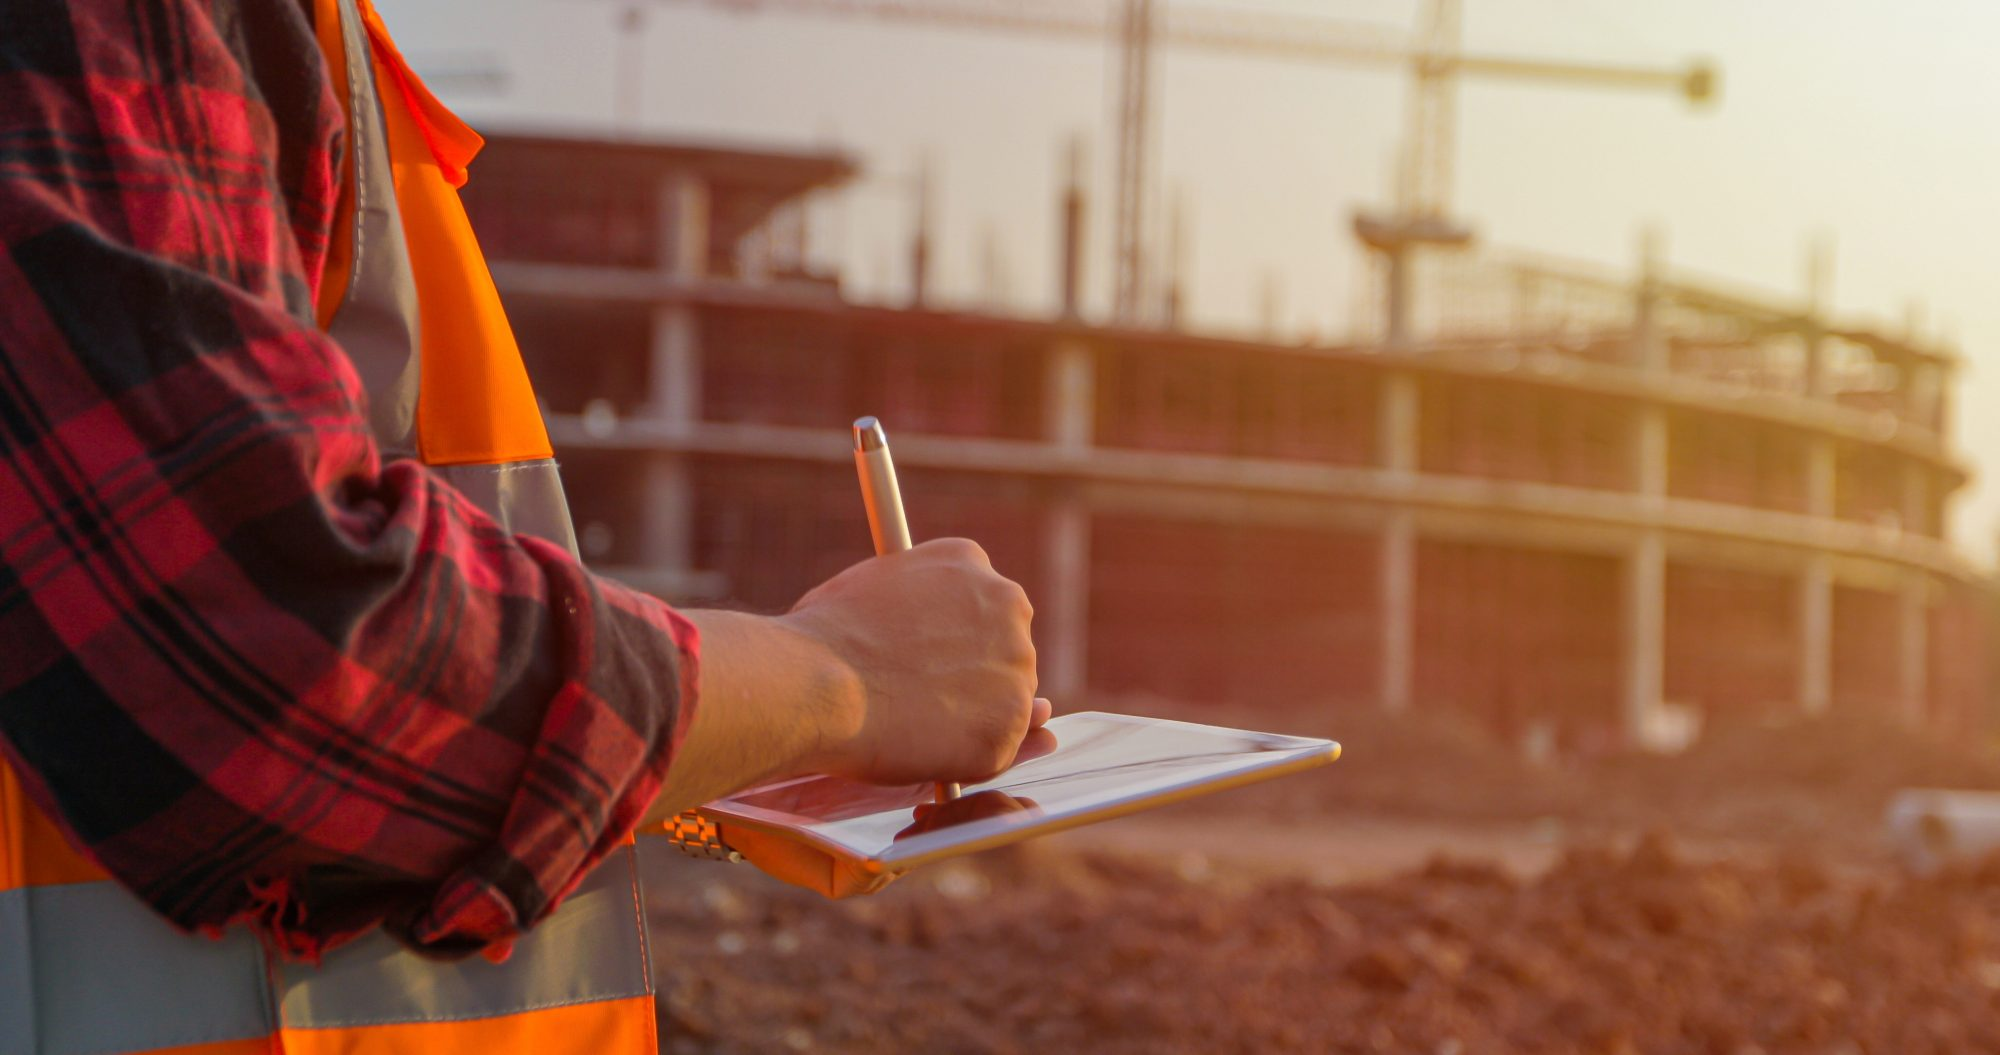 Partnership to develop 'digital ecosystem' to support construction